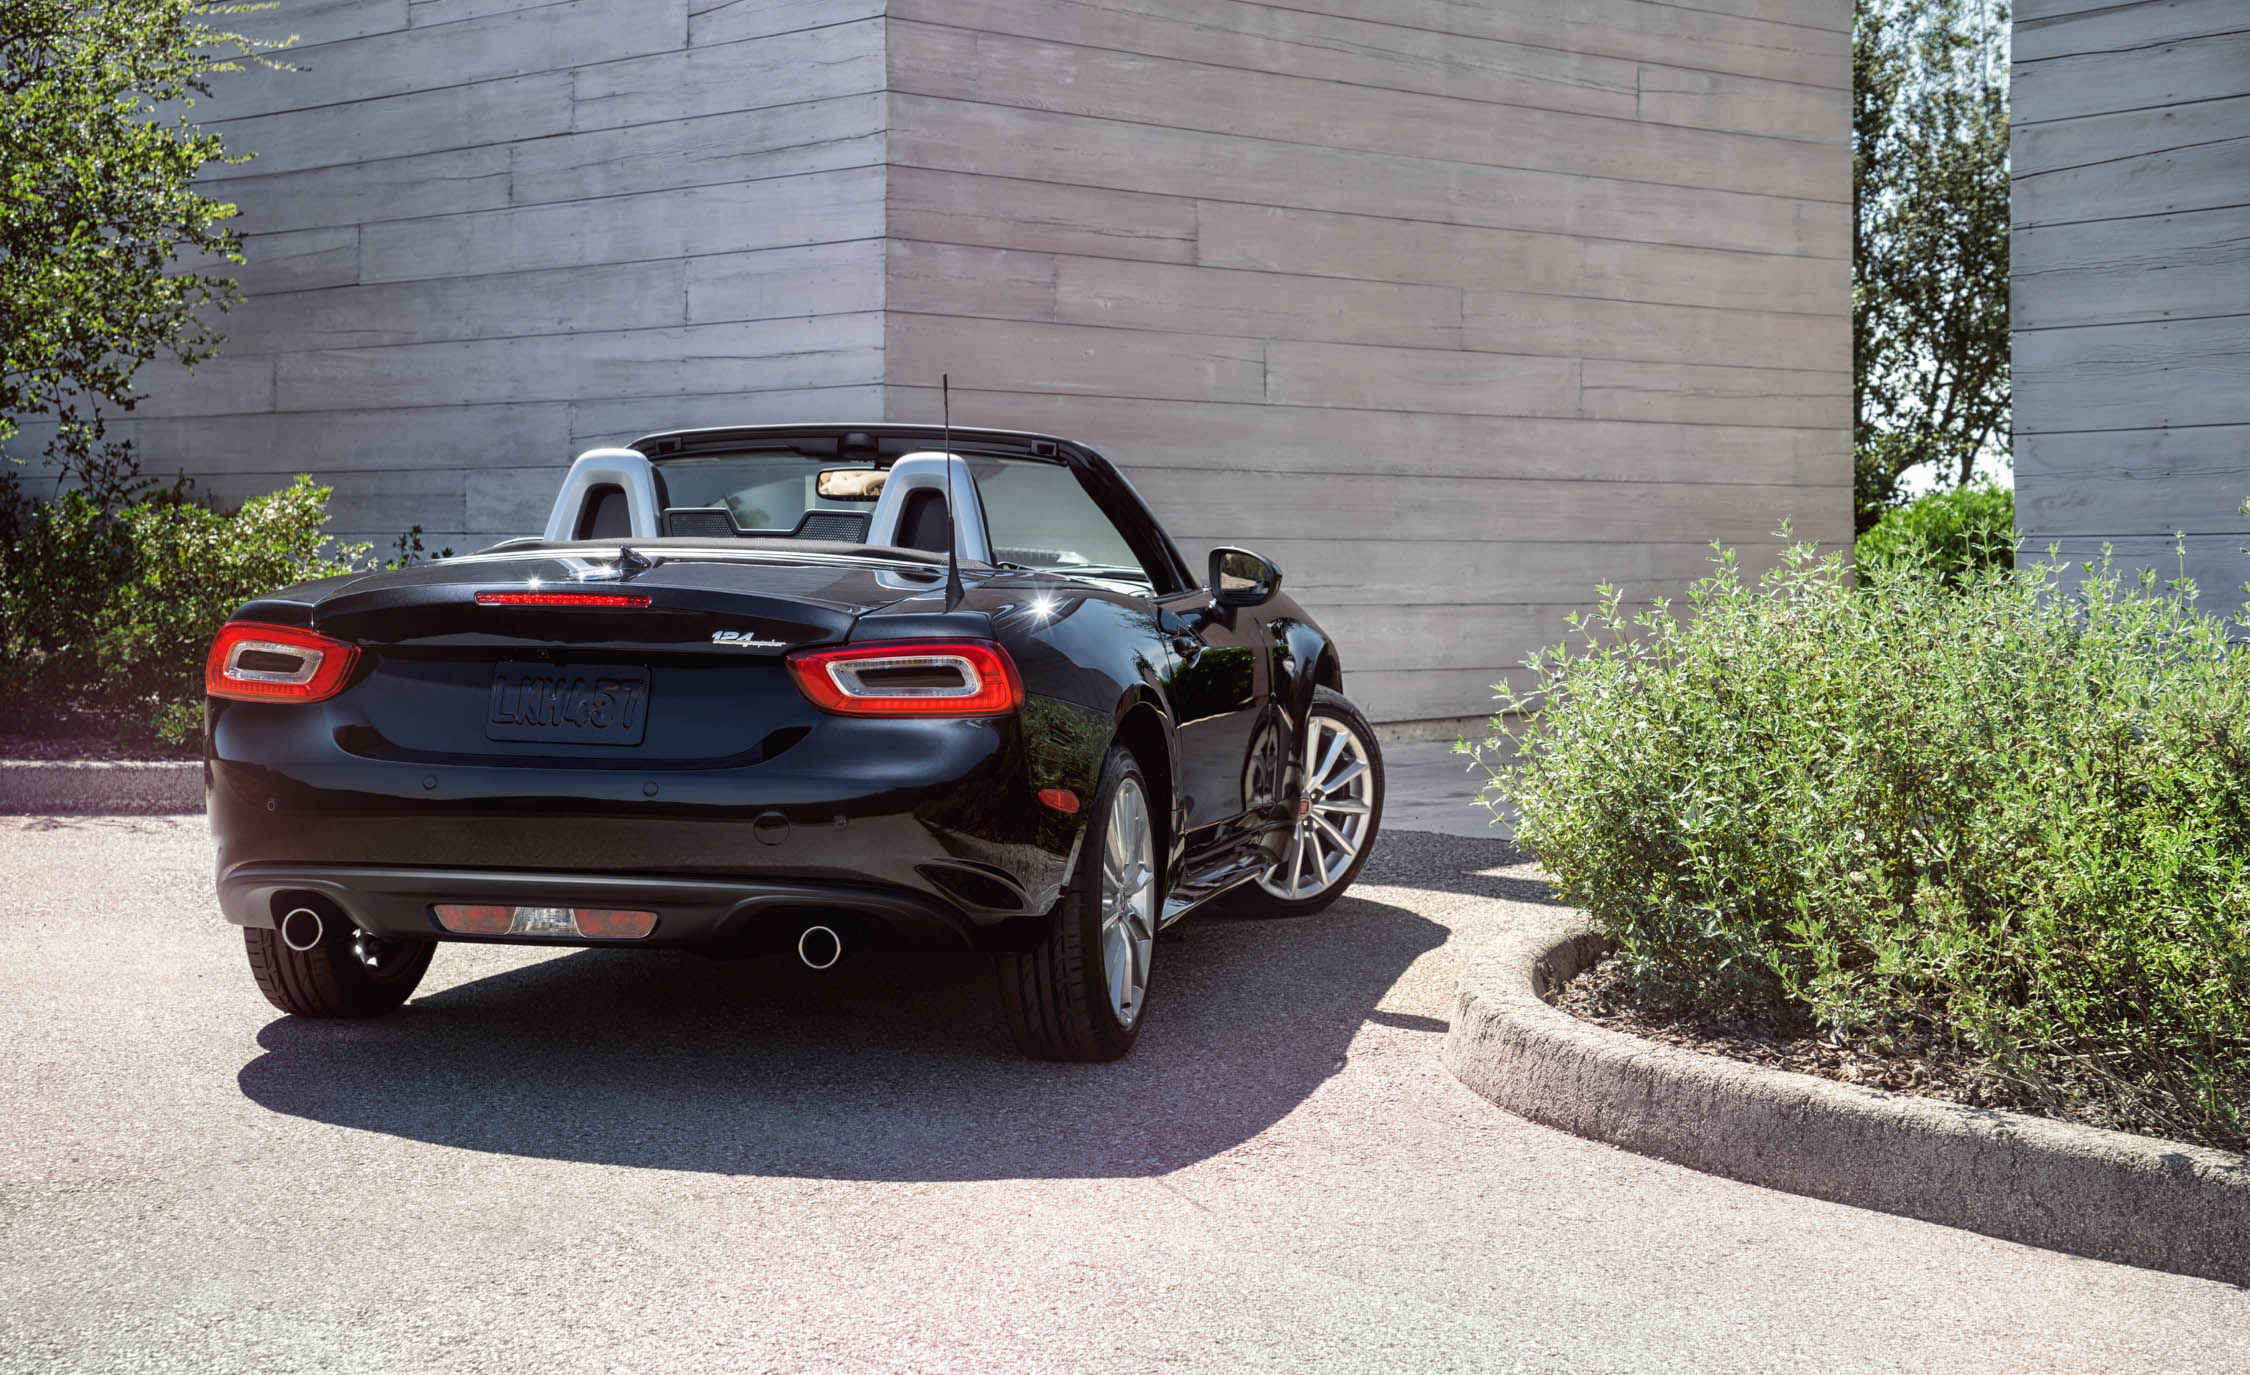 2017 Fiat 124 Spider Convertible Rear Exterior (Photo 7 of 23)